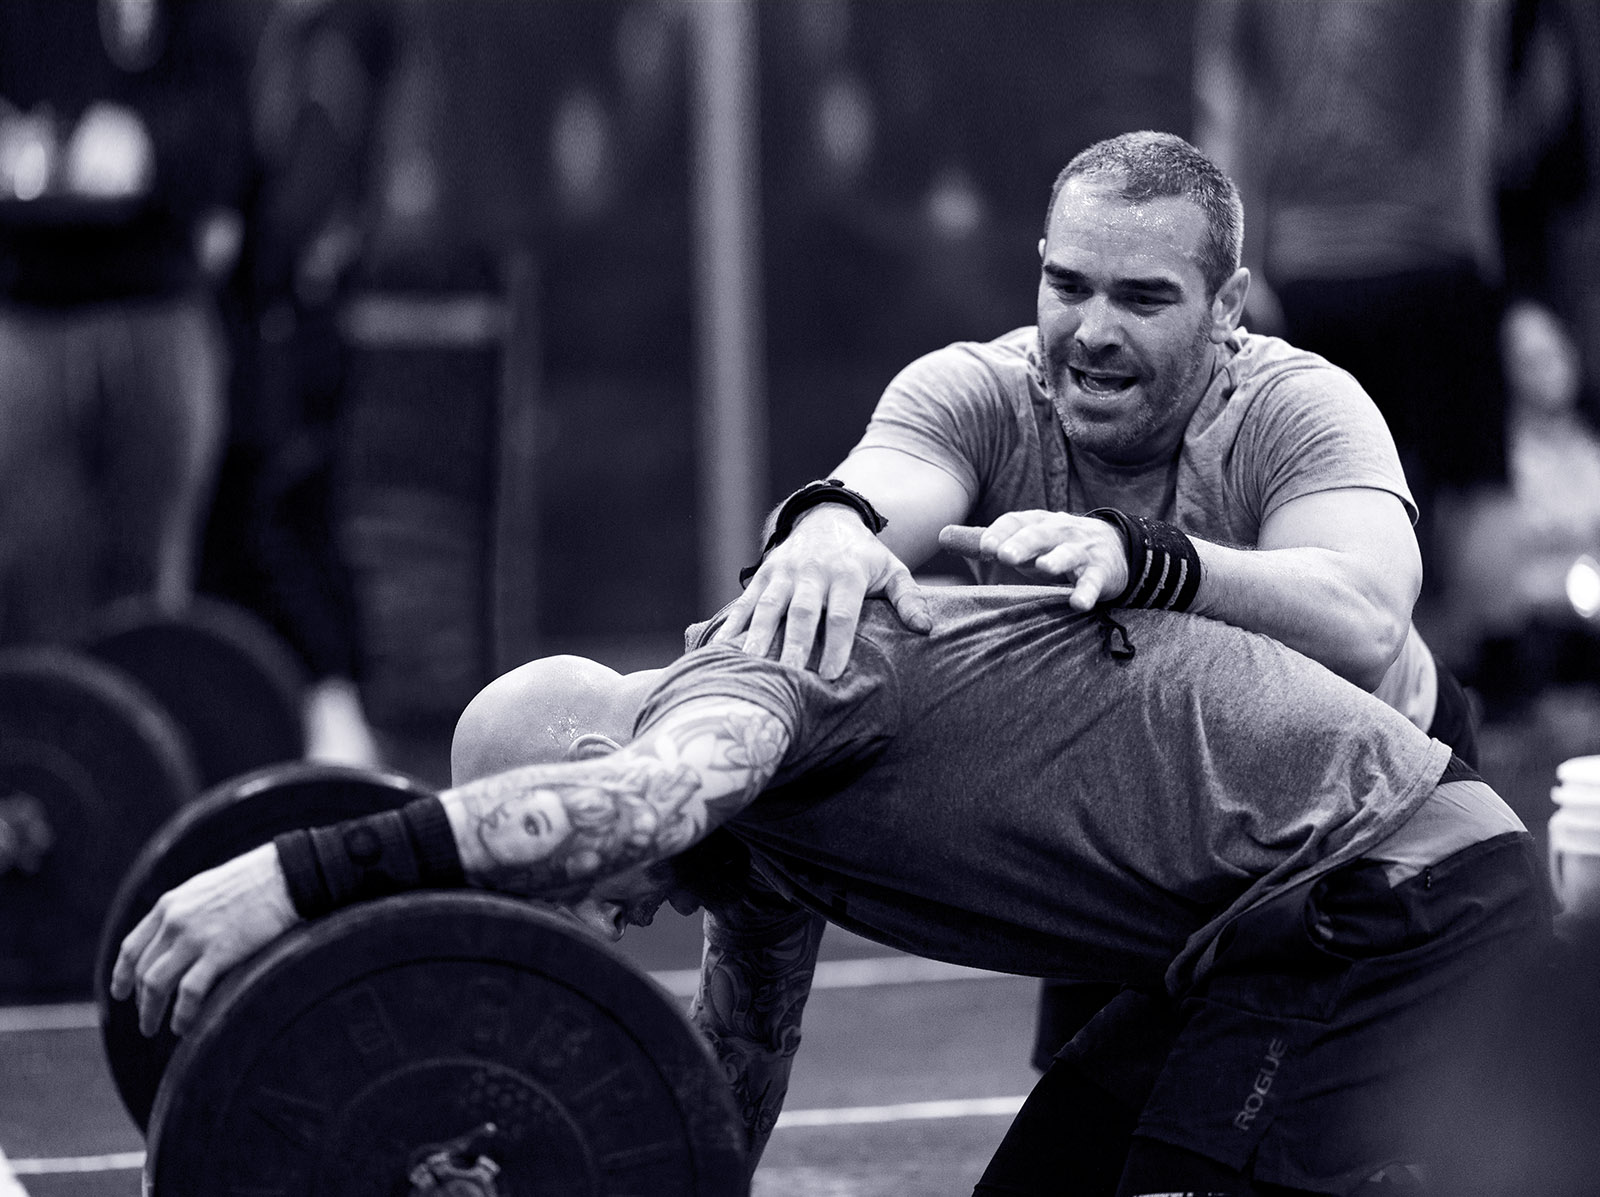 Masters men CrossFit athlete exhausted after WOD